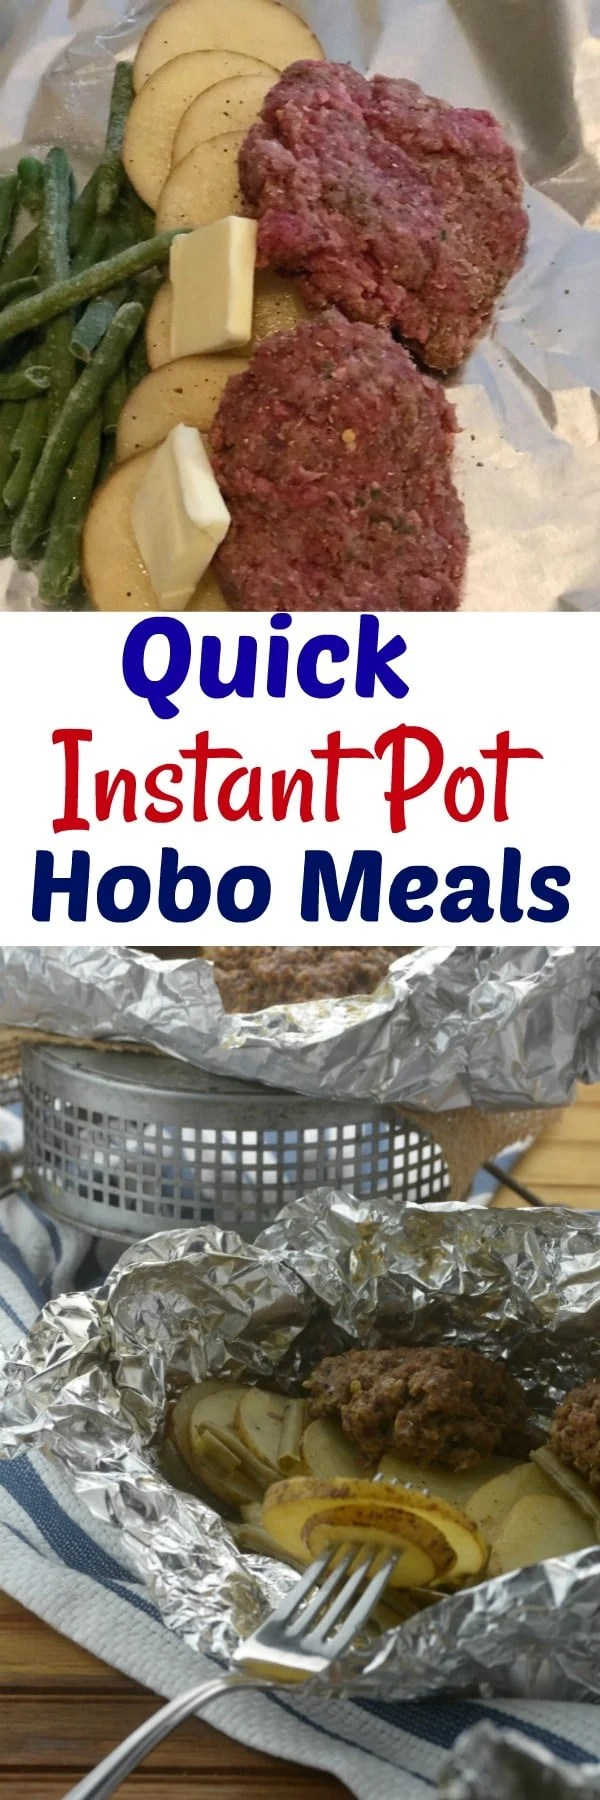 Easy Instant Pot Hobo Meals